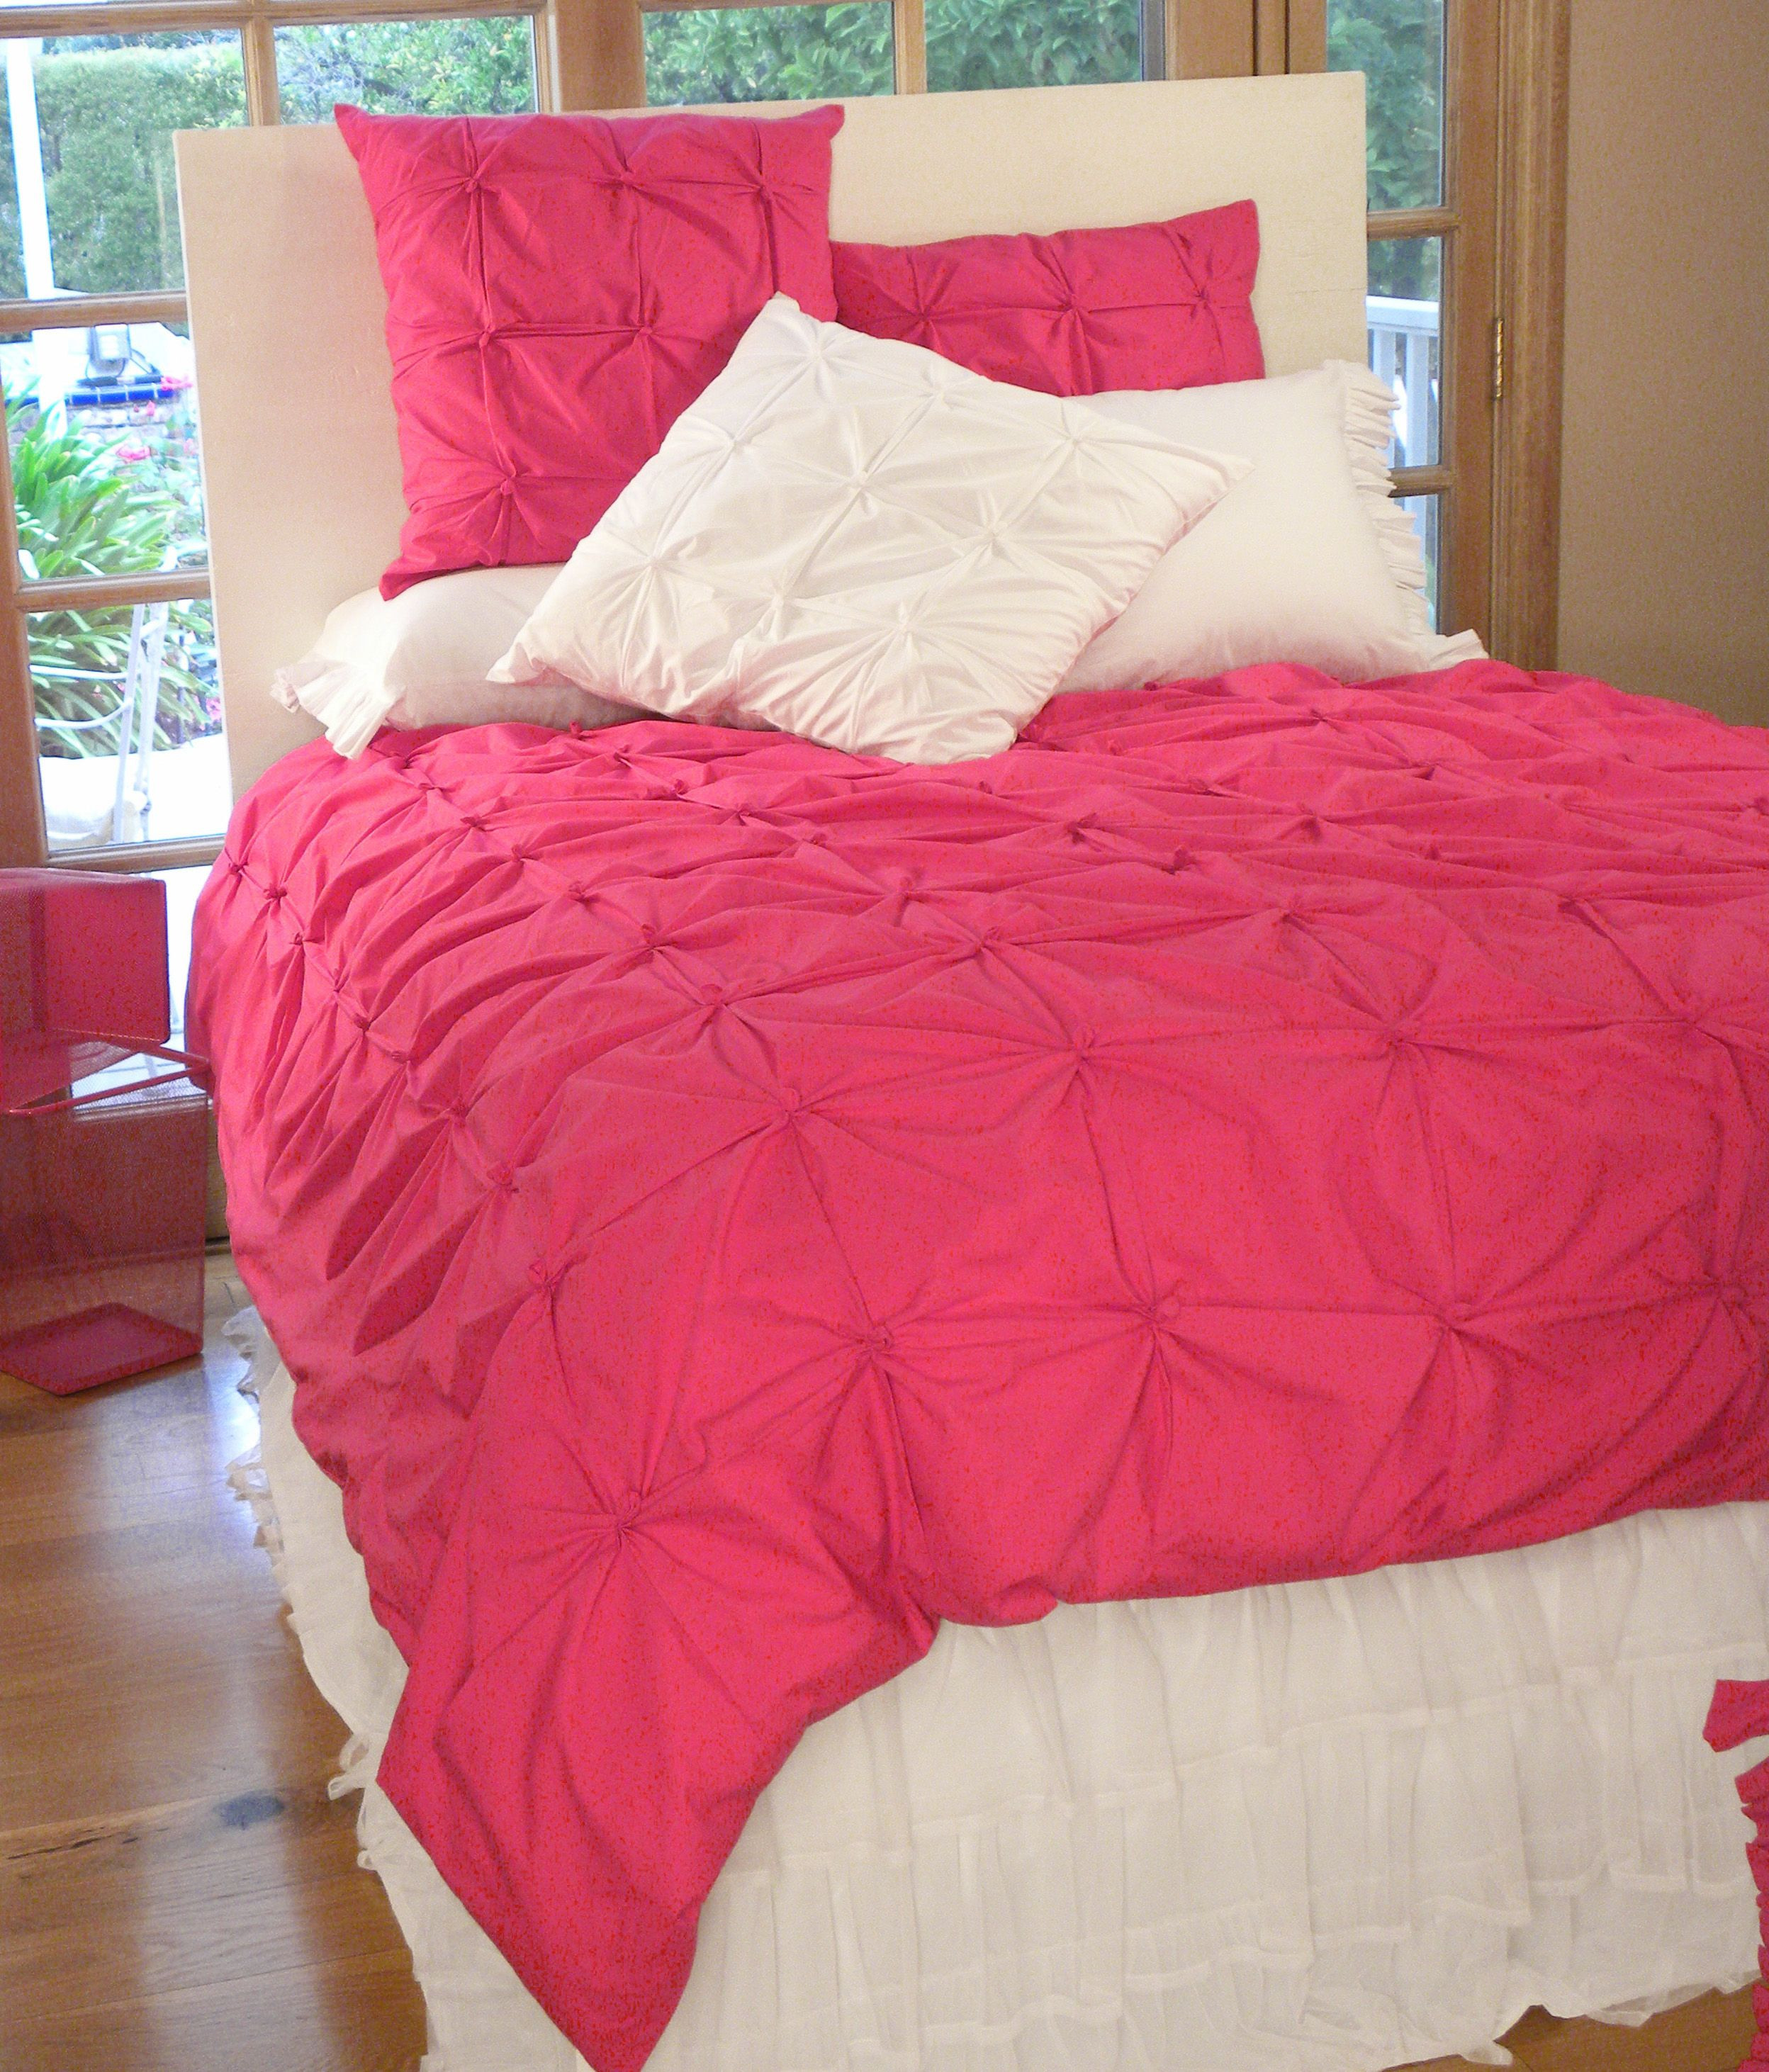 Pink bed sets for girls - Pink Bed Sheets Yes Please Http Thesoftestbedsheets Com Where